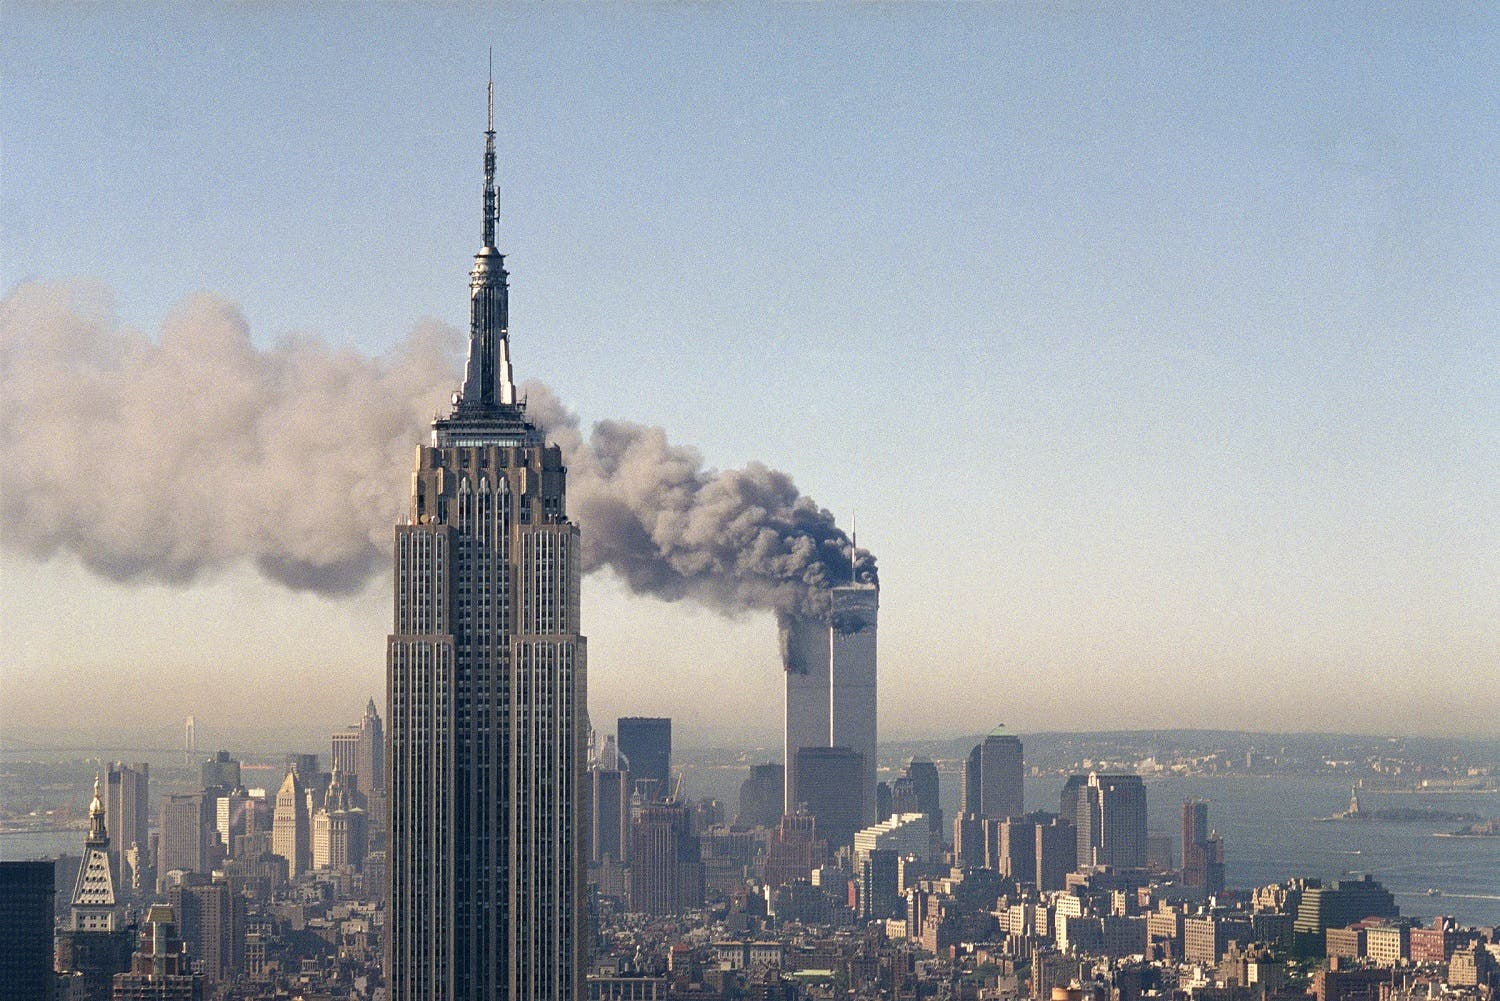 The twin towers of the World Trade Center burn behind the Empire State Building in New York after terrorists crashed two planes into the towers causing both to collapse (File Photo: AP)